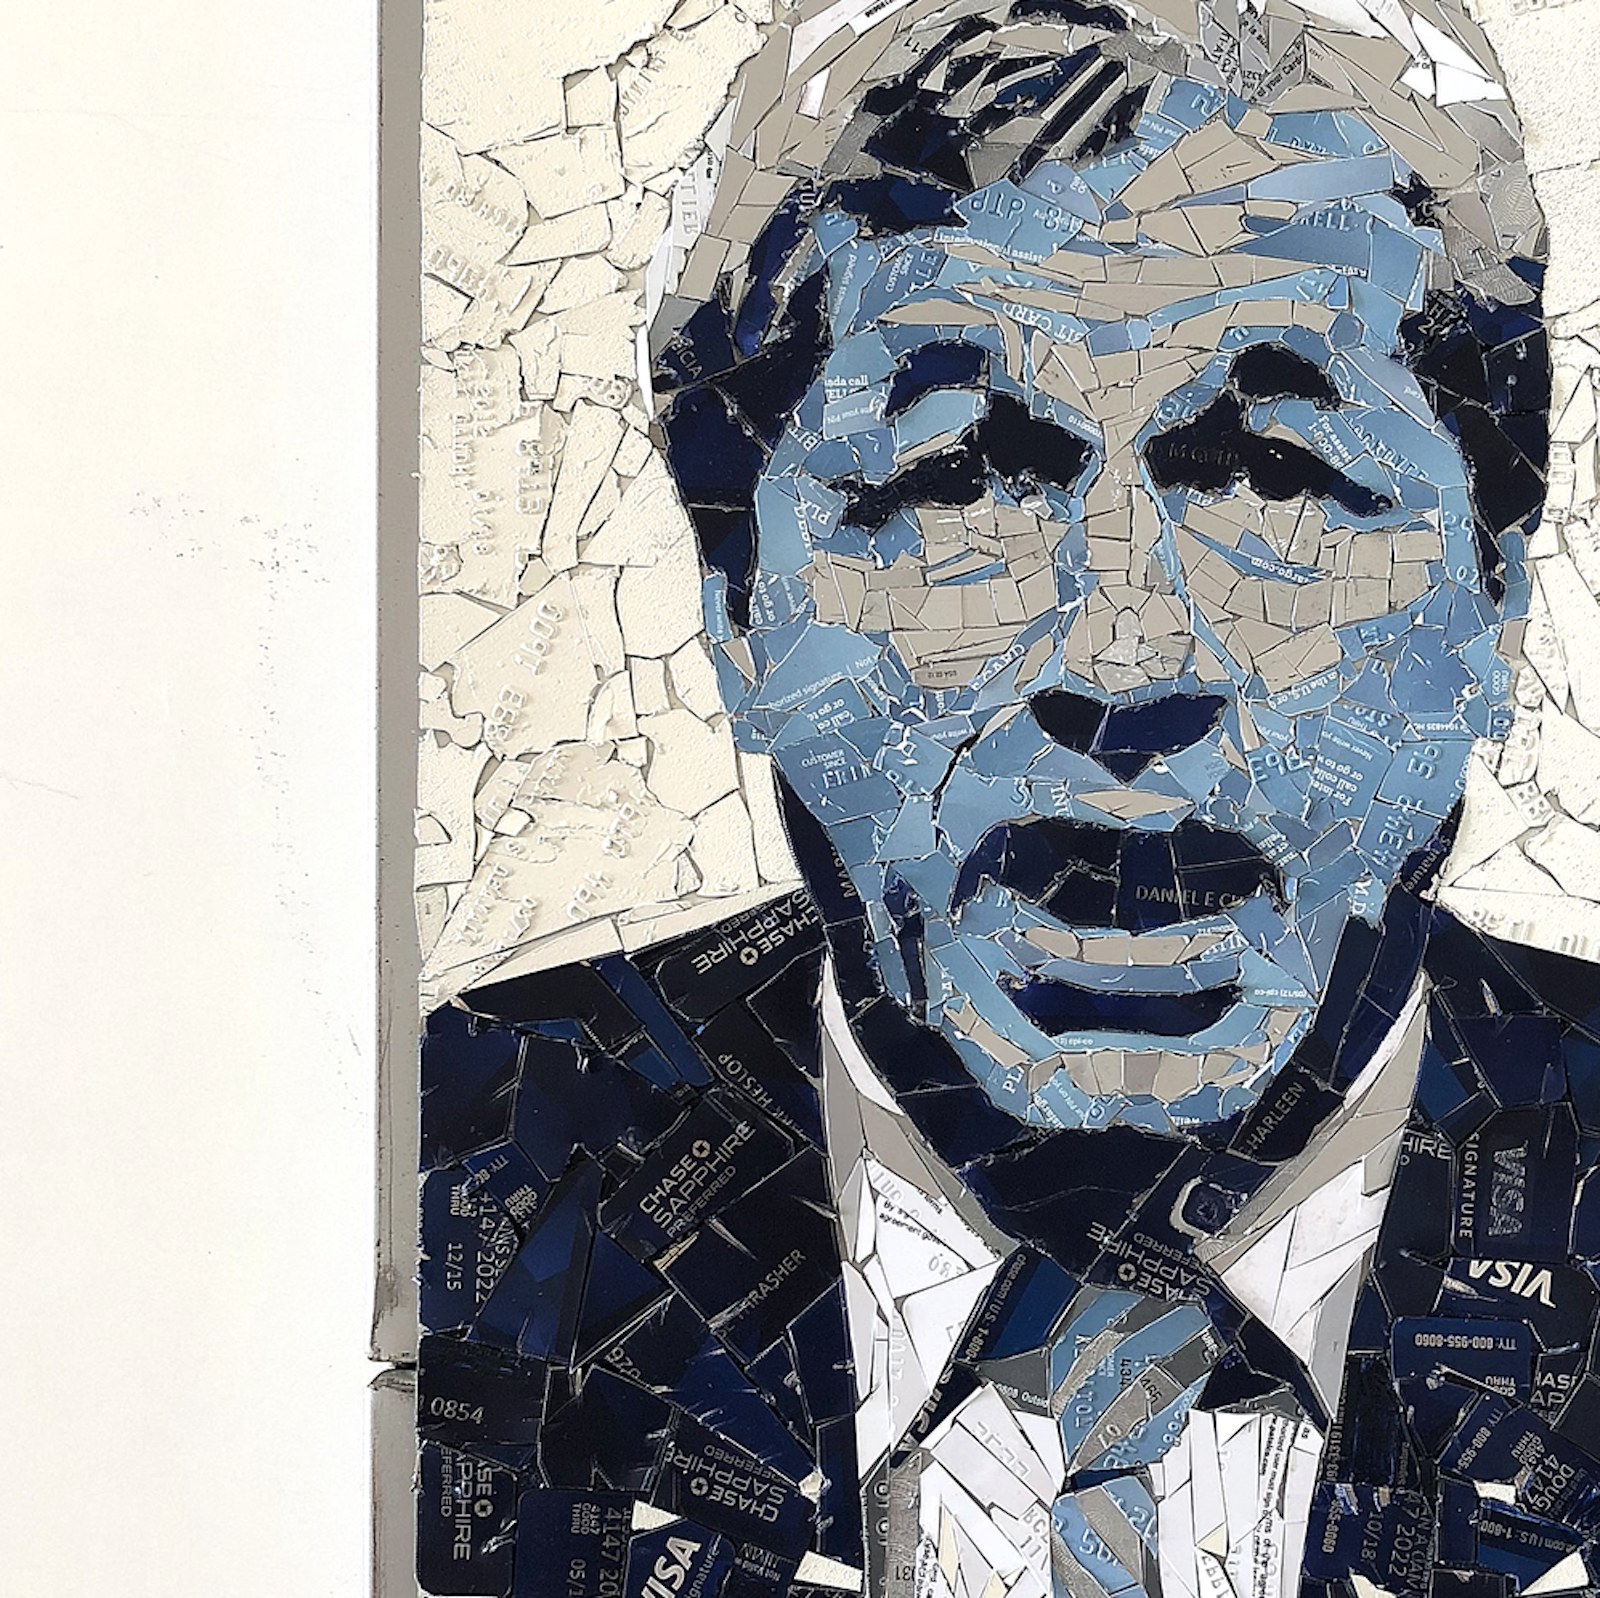 You Can Now Bid for Jamie Dimon Crypto Art Made From Old Credit Cards